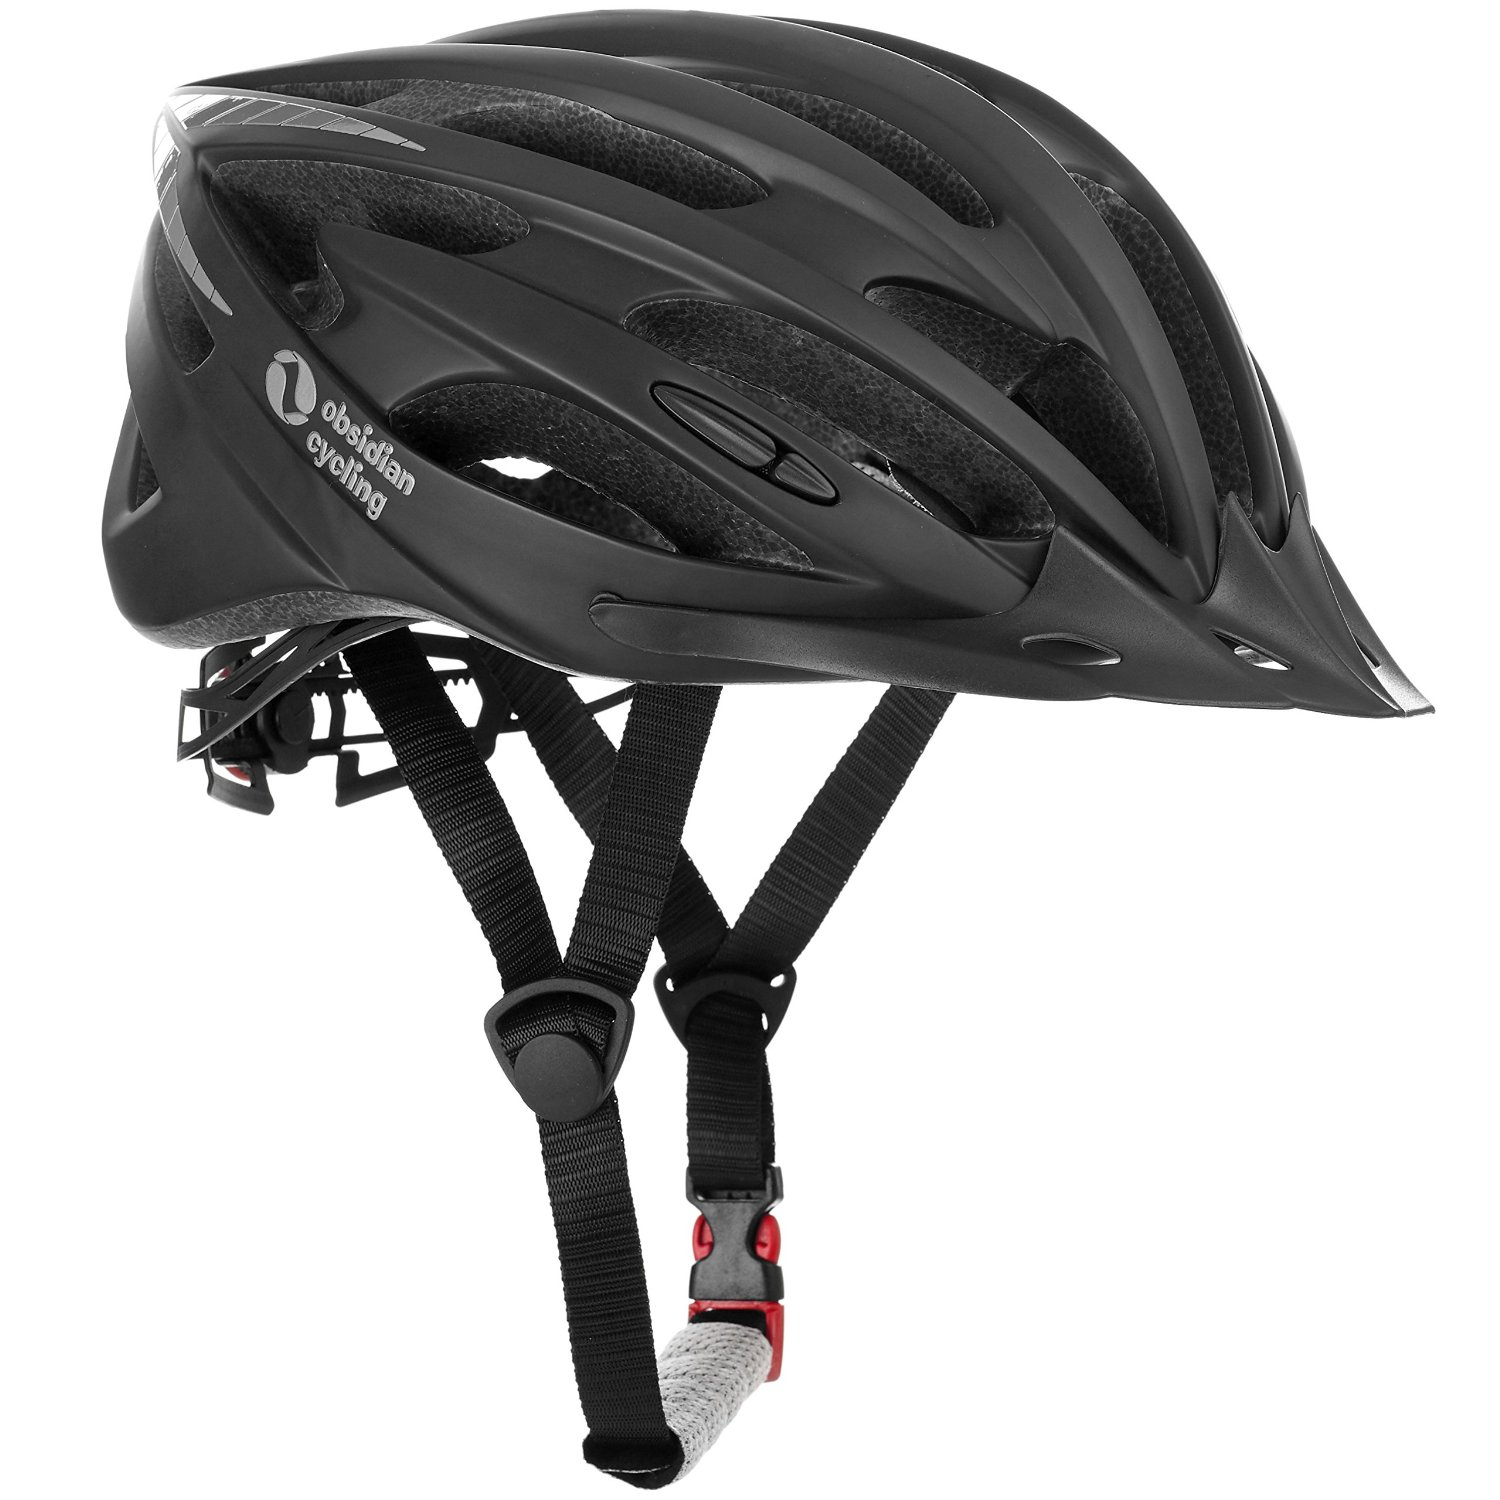 Best Mountain Bike Helmet